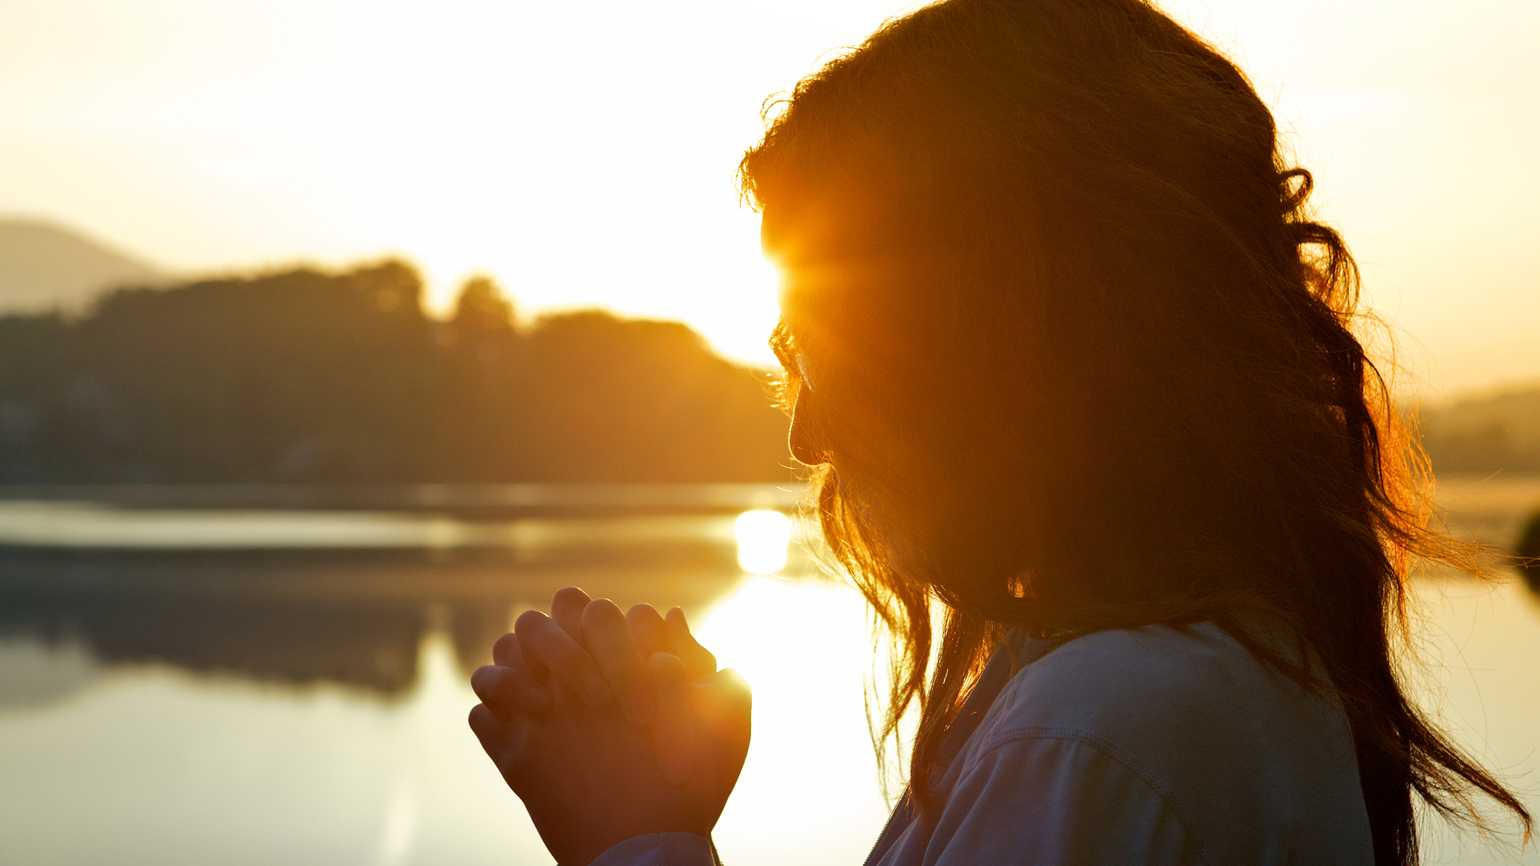 Woman praying by lake at sunrise.